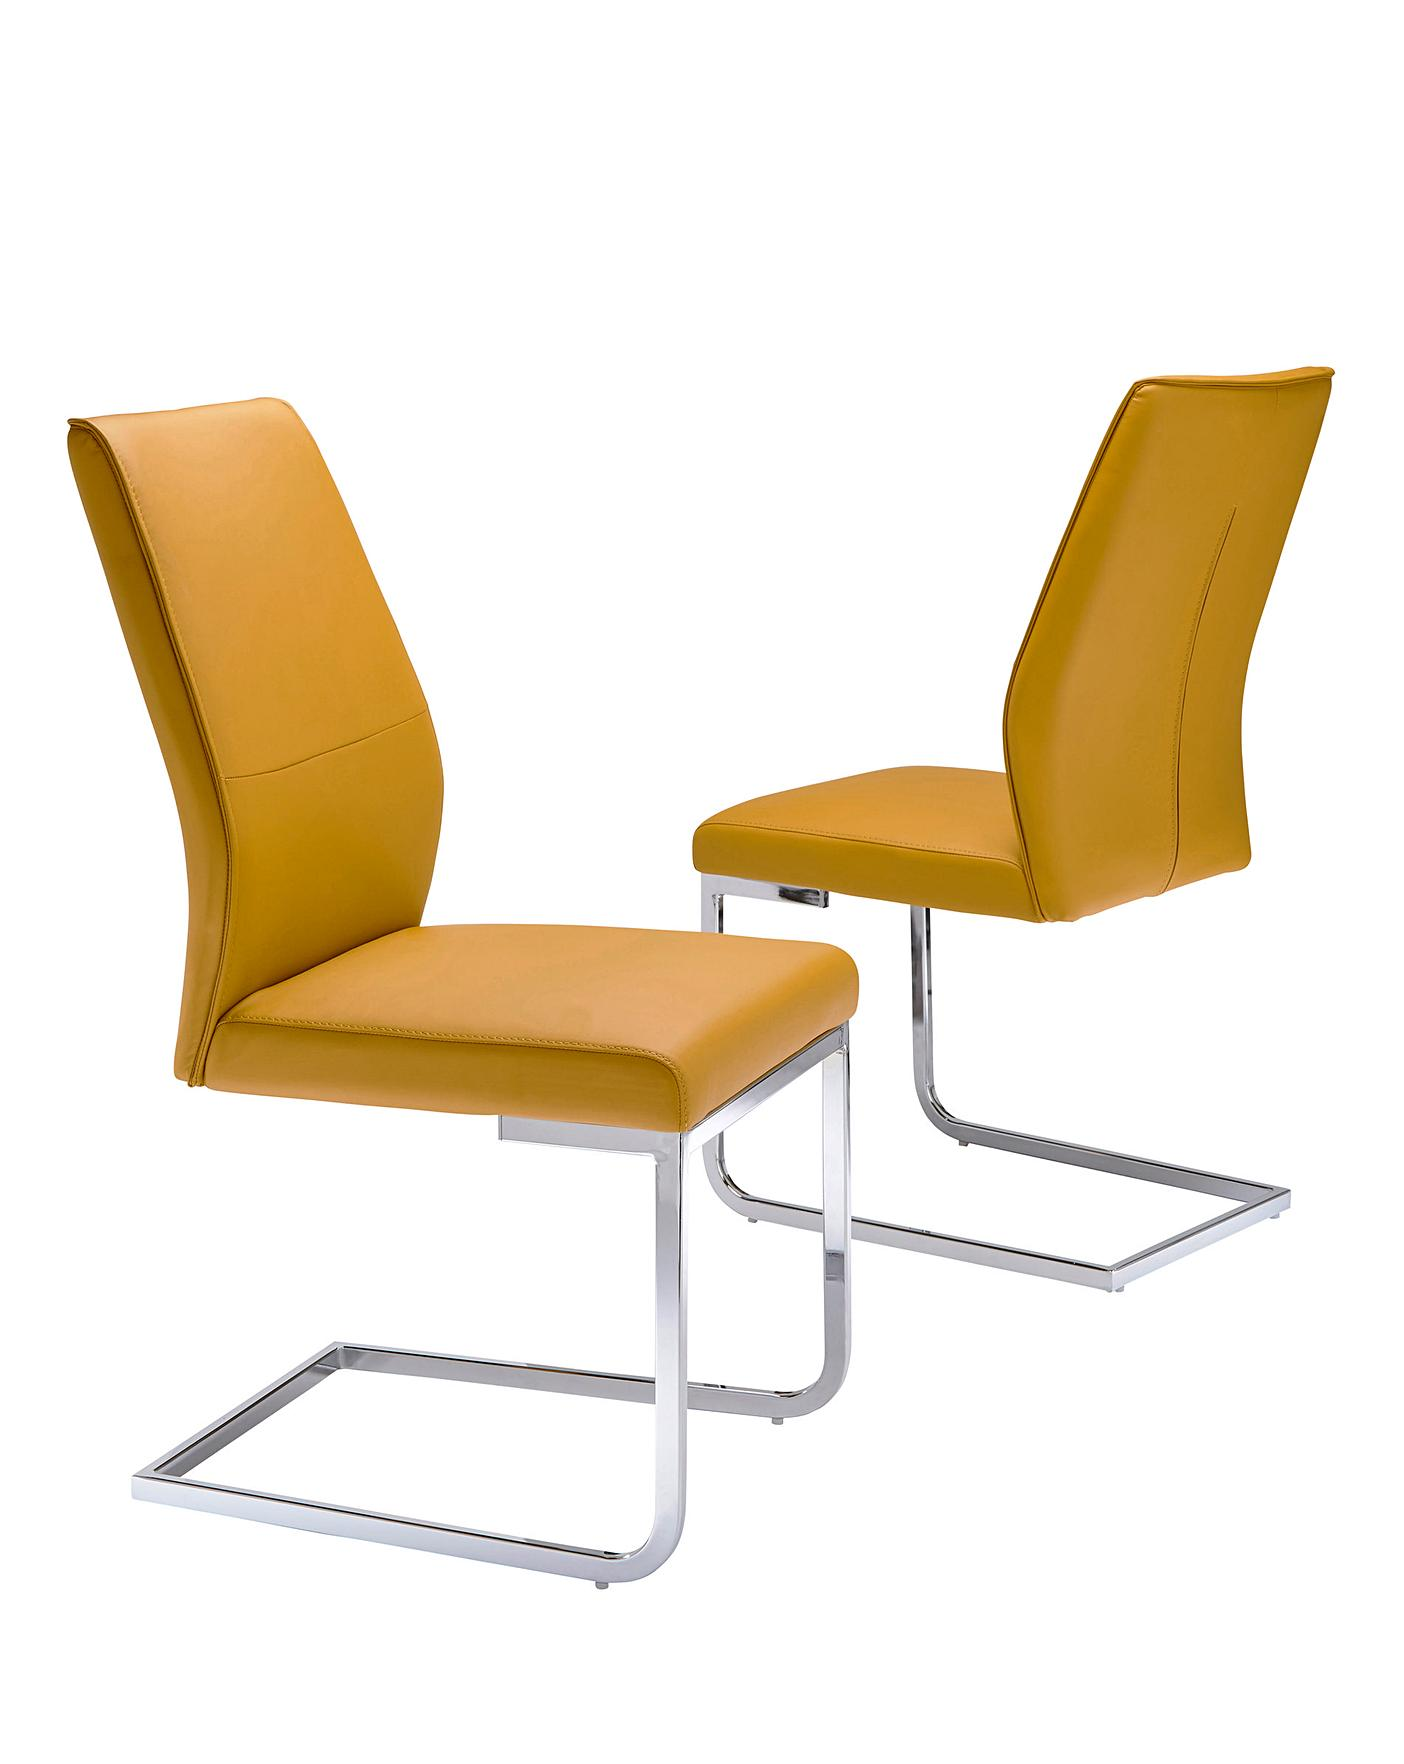 Atlanta Cantilever Dining Chairs